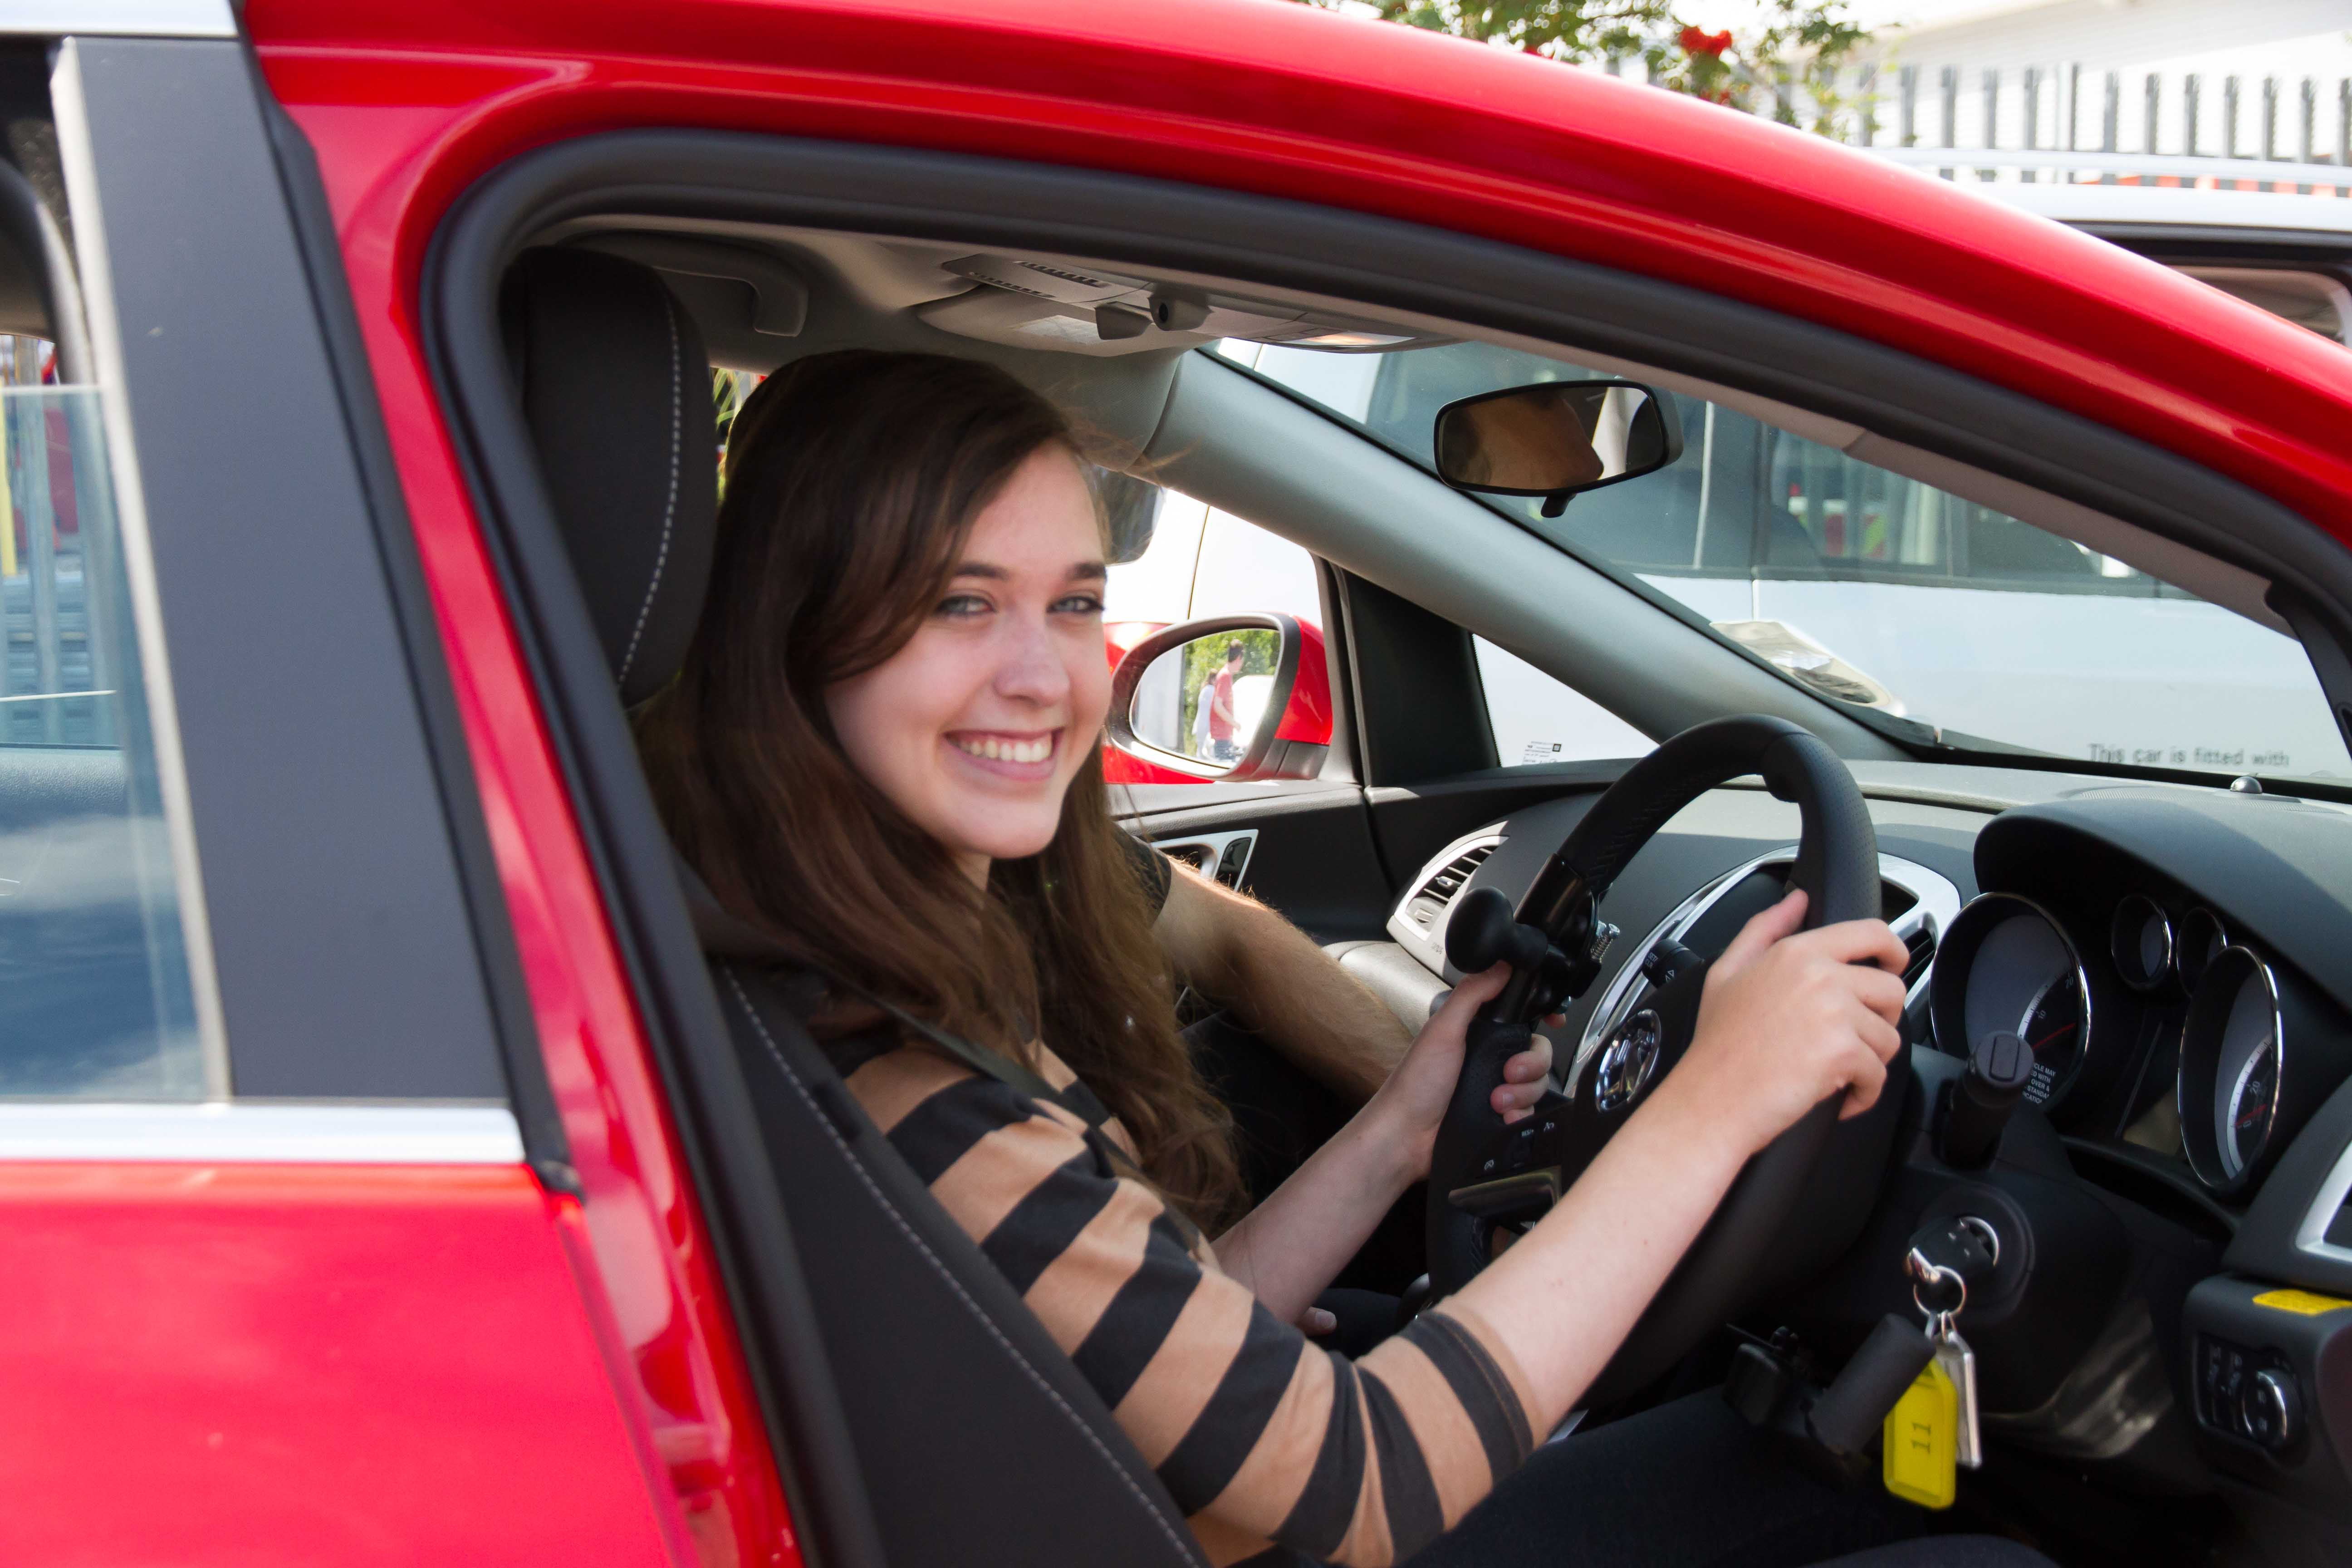 Daily Star supports young disabled drivers